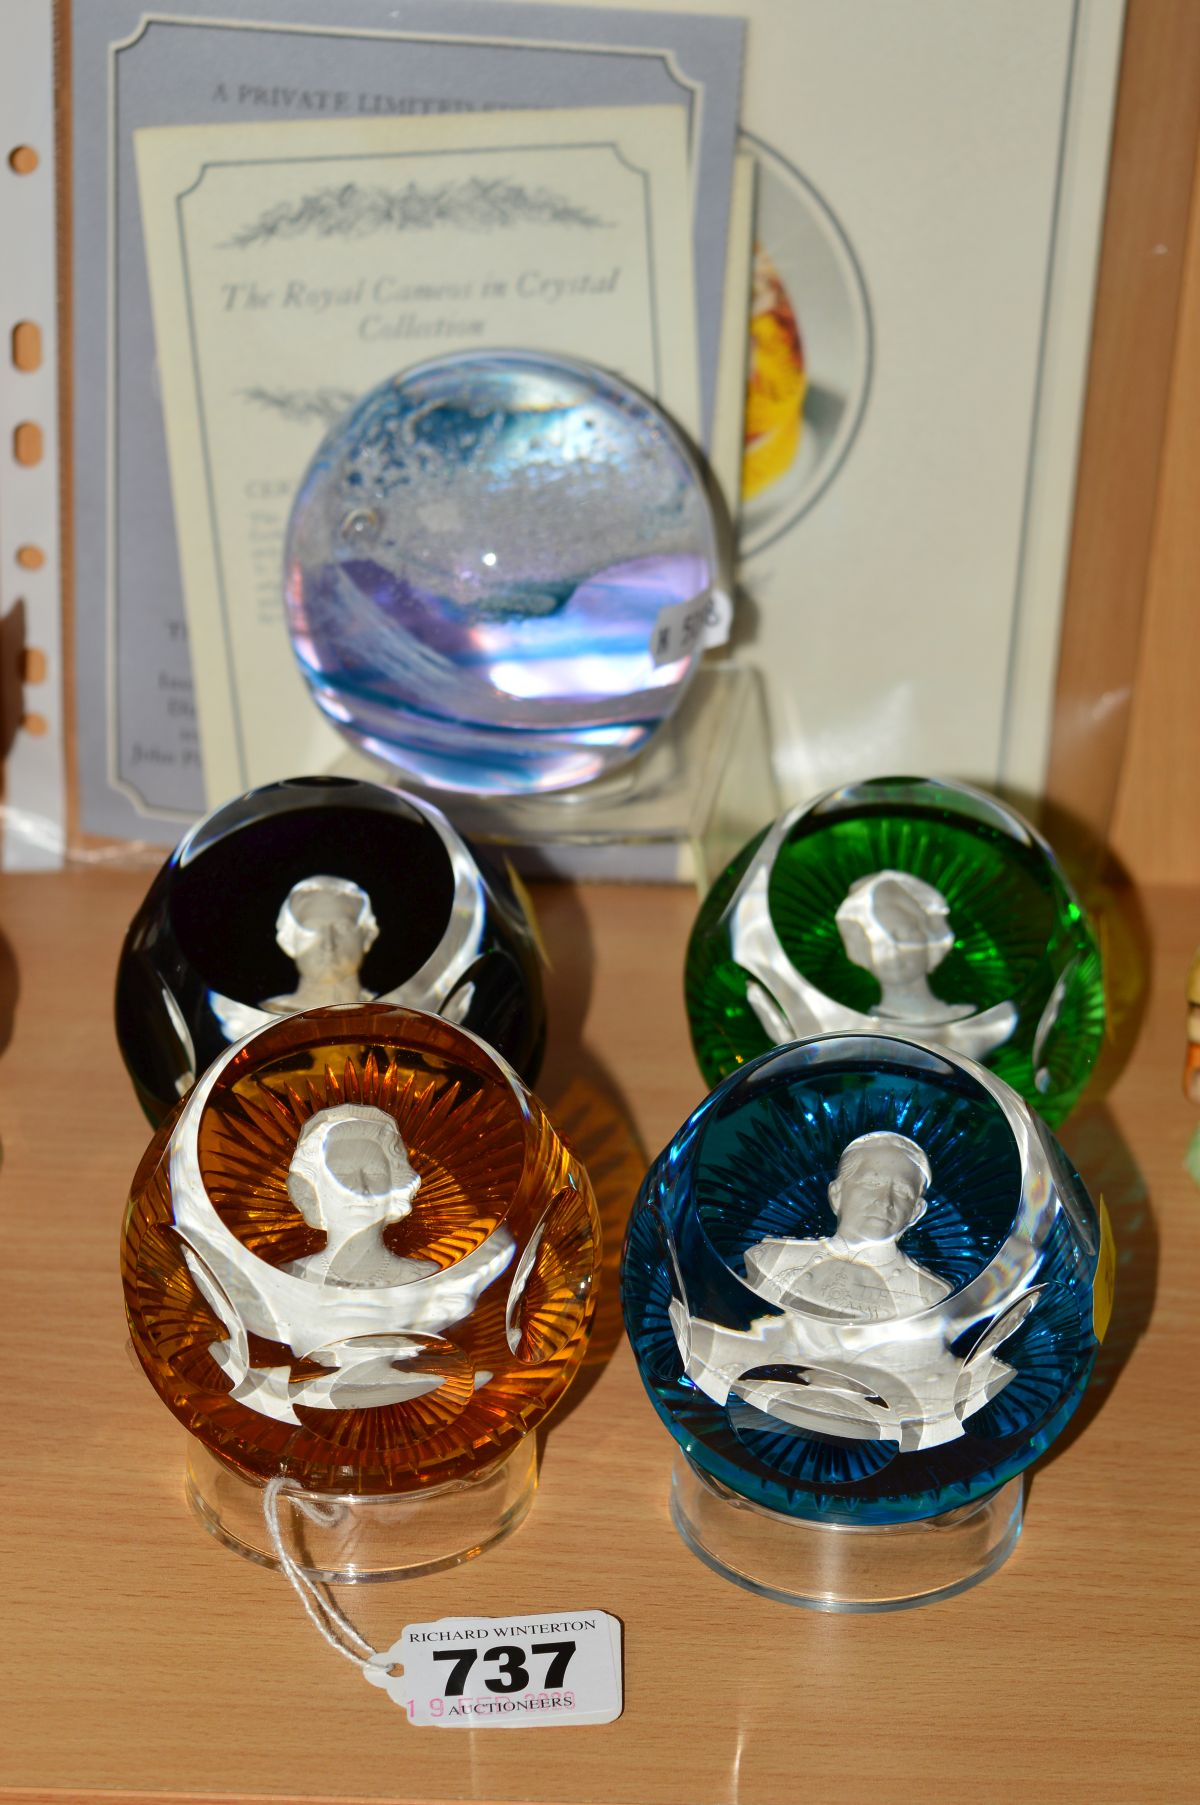 A SET OF FOUR BACCARAT PAPERWEIGHTS BY JOHN PINCHES, LONDON, from 'The Royal Cameos in Crystal